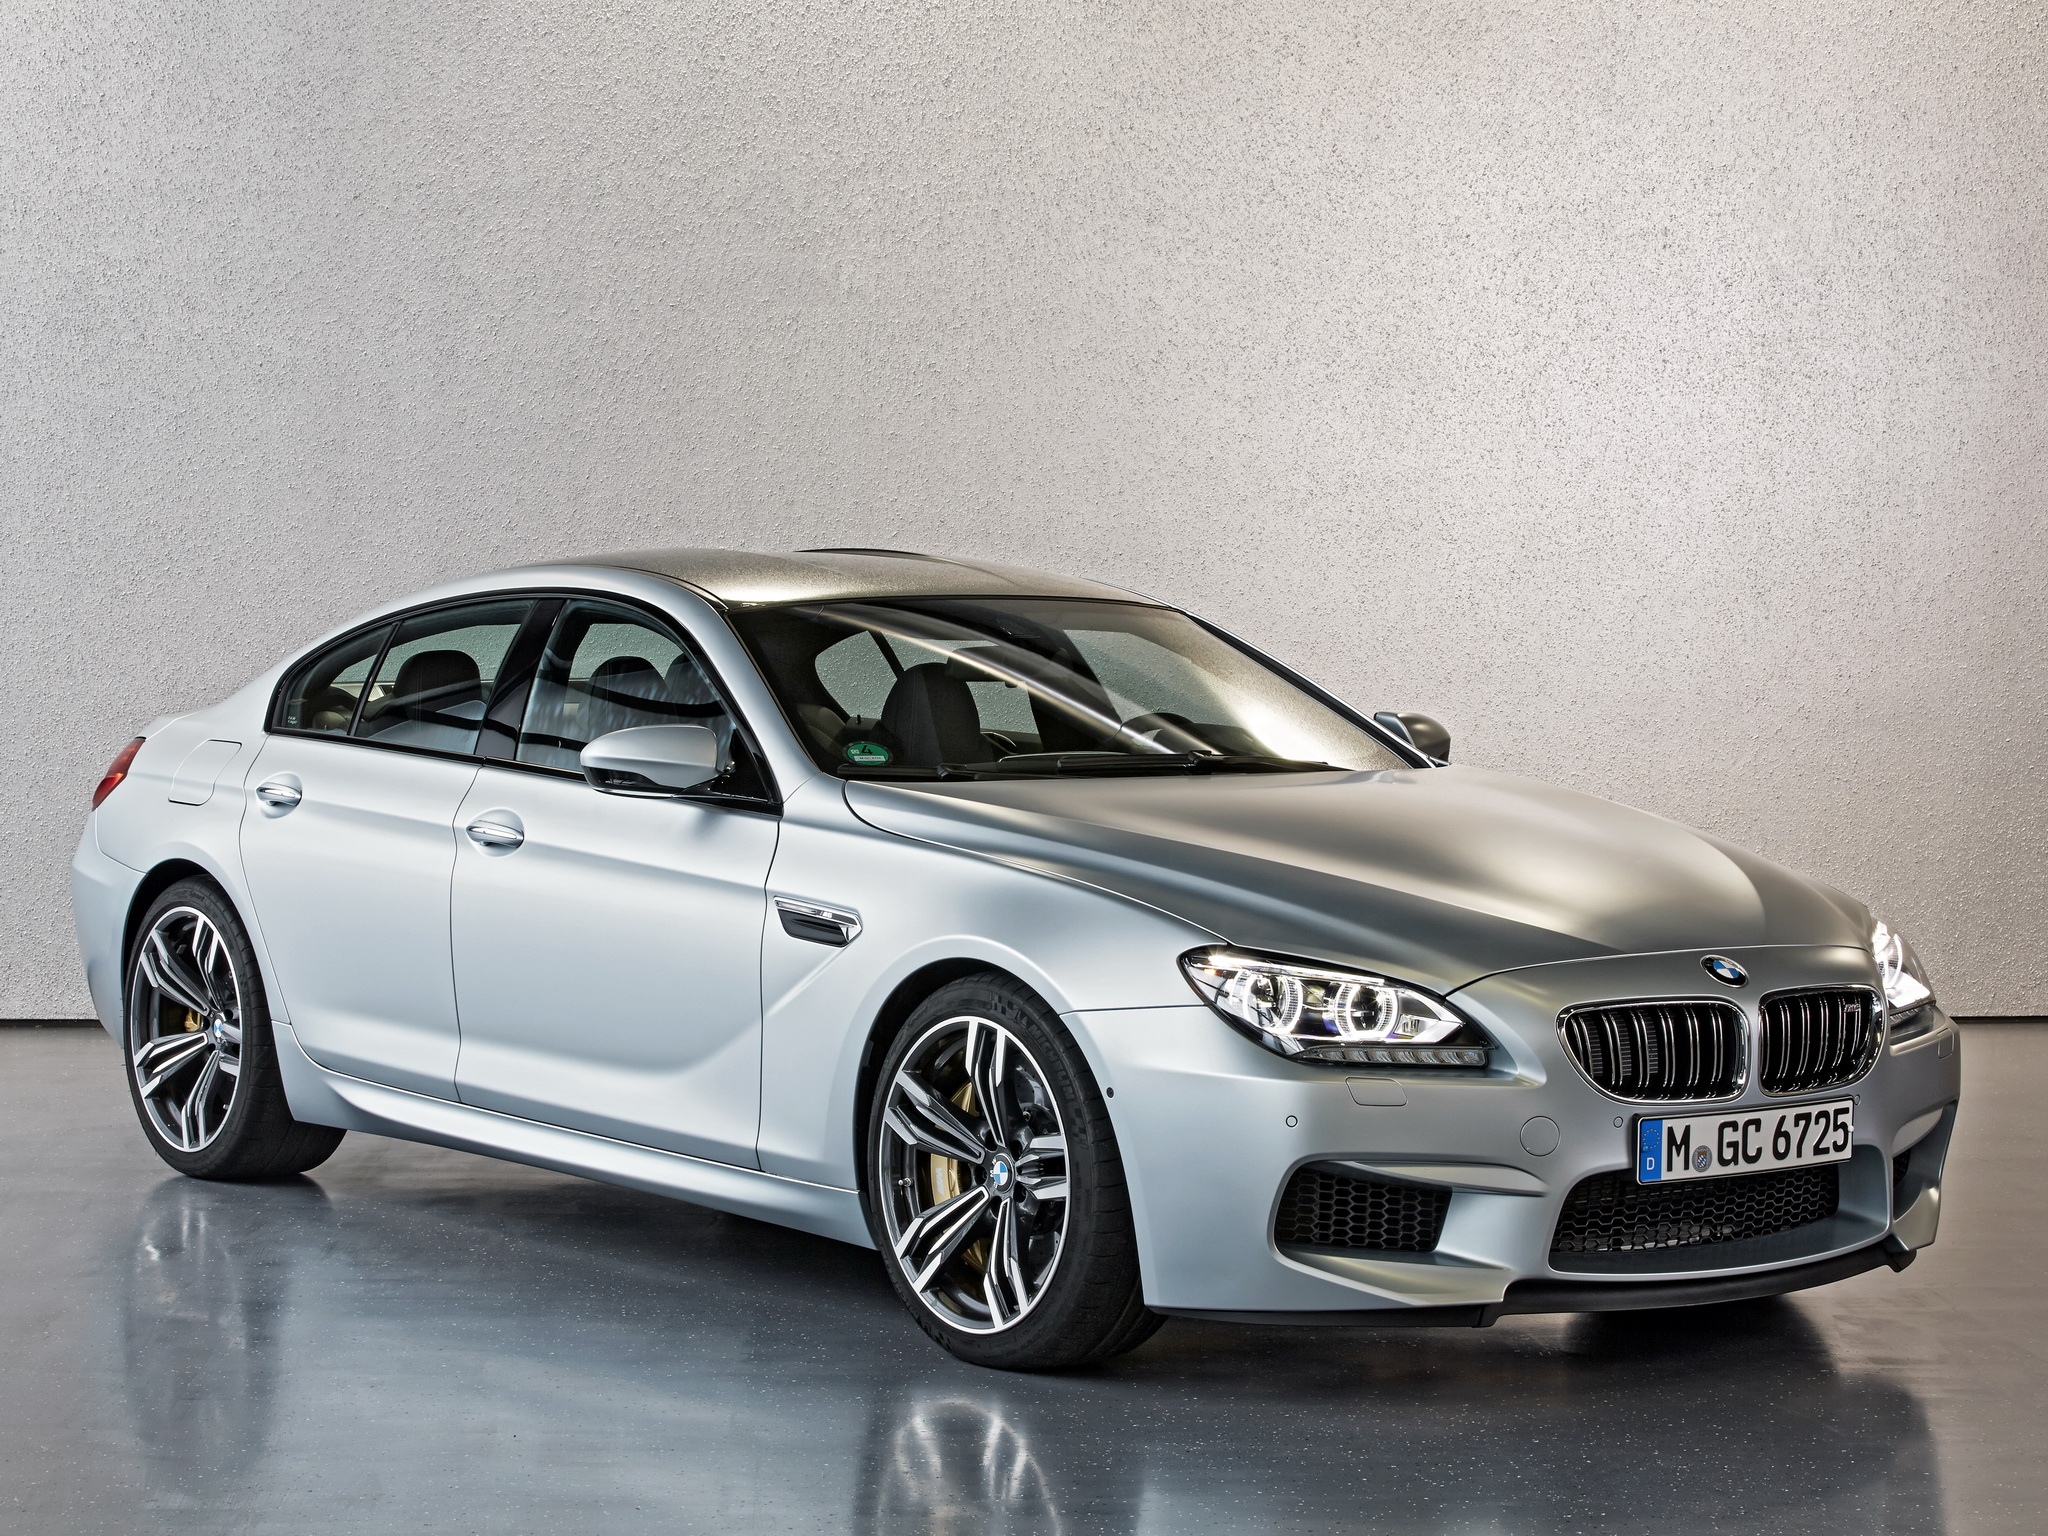 BMW M6 Coupe photo 100467